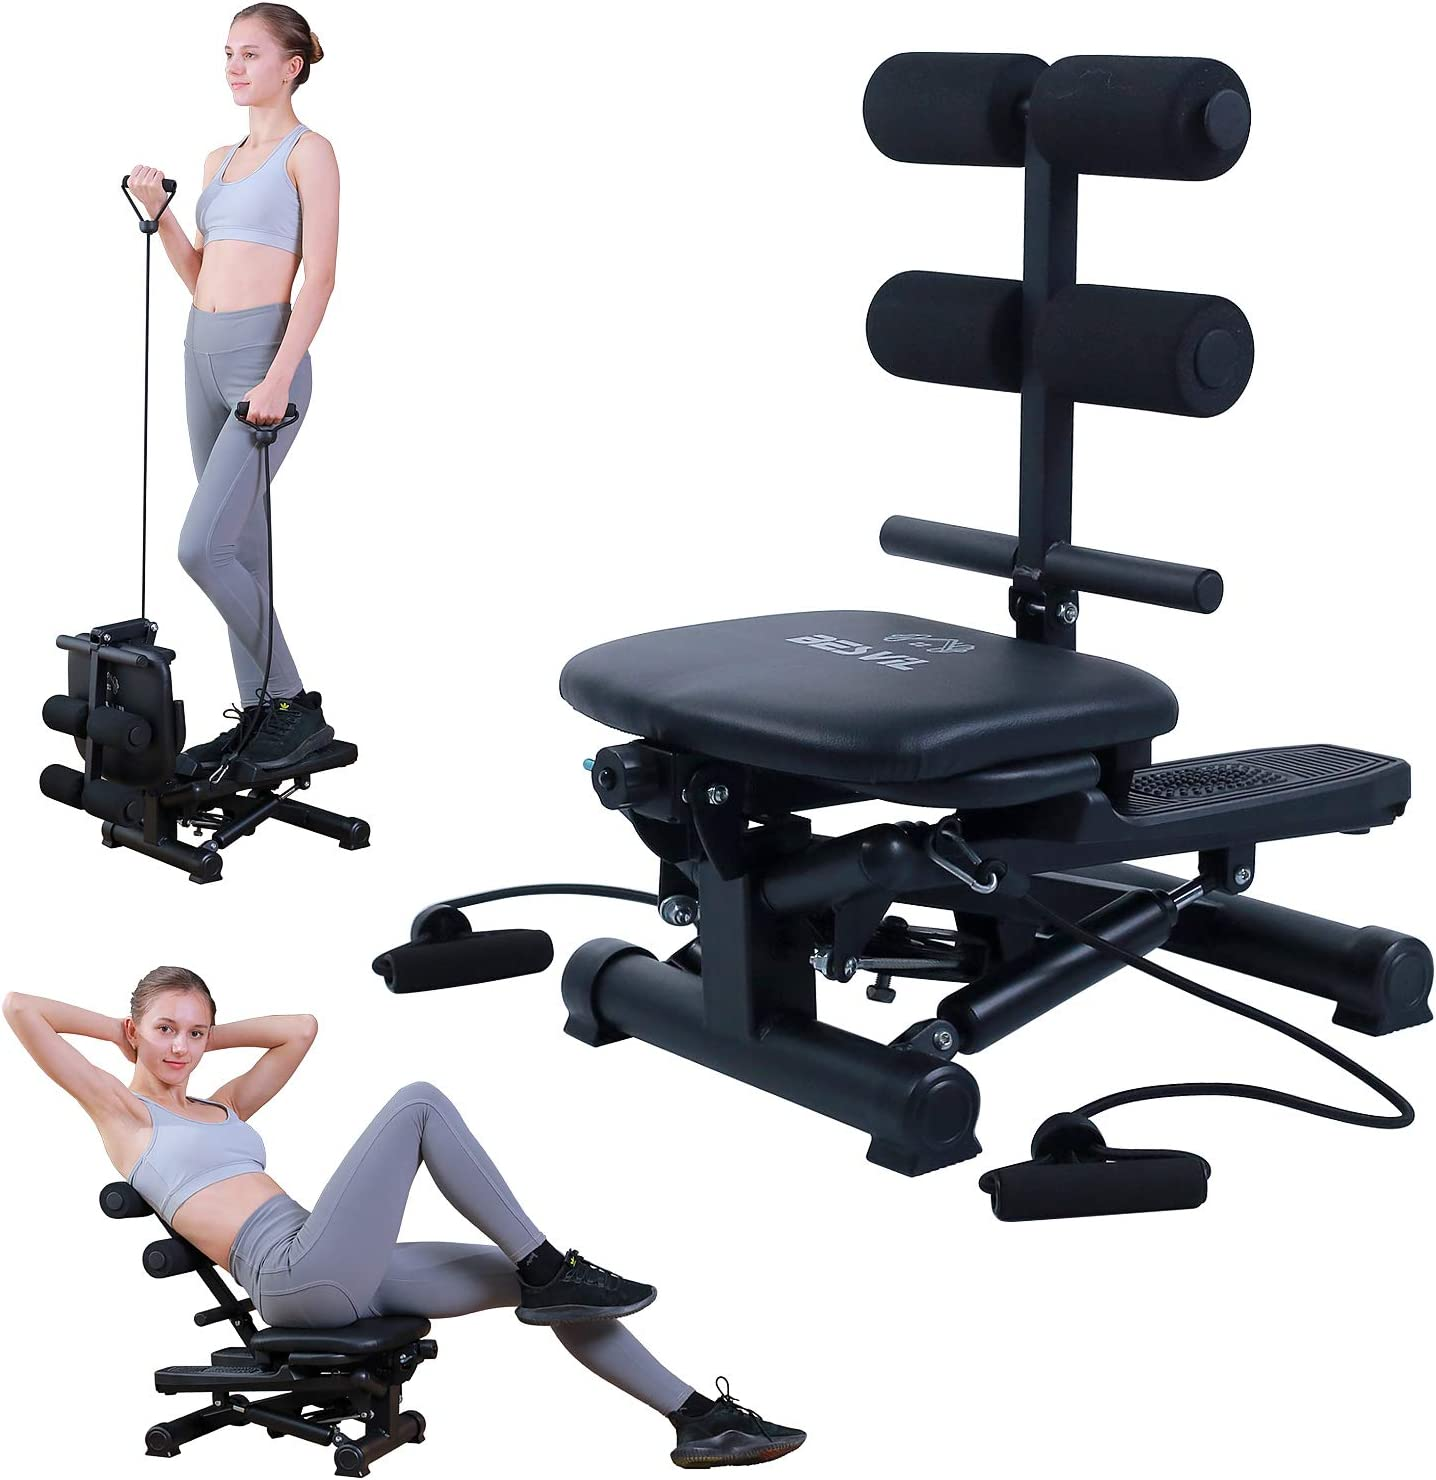 BESVIL Stepper ABS Workout Equipment AB Machine Total Body Workout Fitness Exercise Machine Stepping Exercise Machine for Home Gym Workout,Black